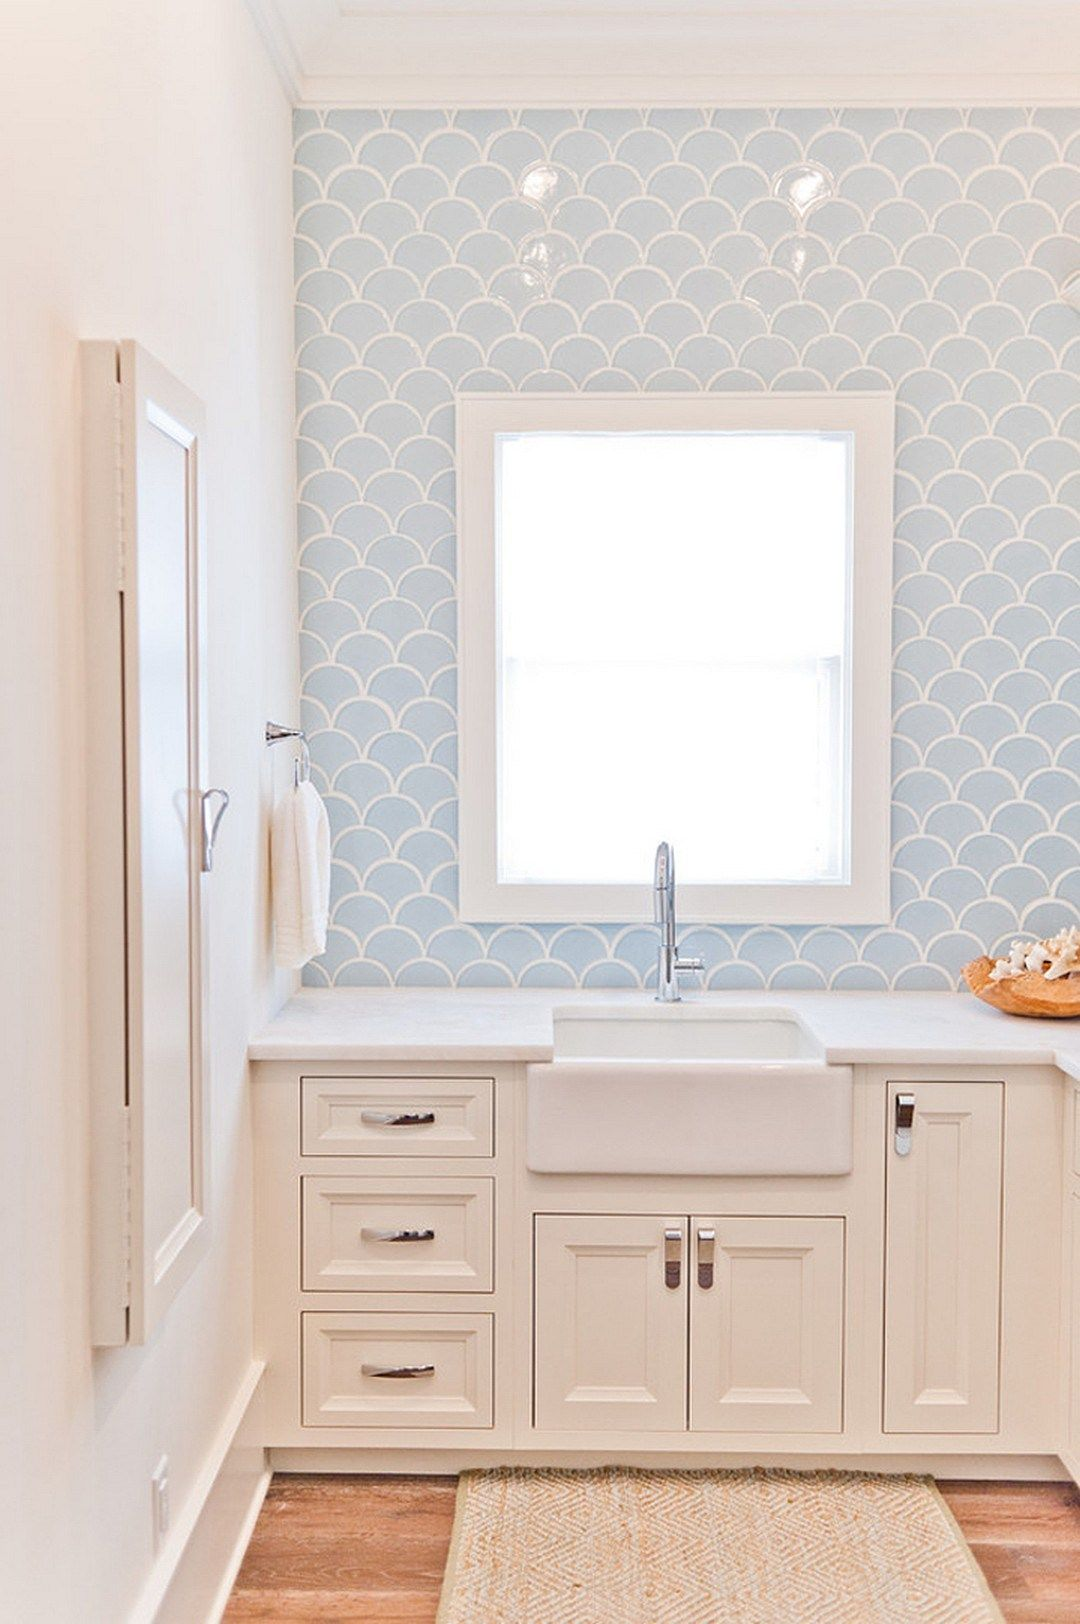 Pin by Home Design Elements on Bathroom Remodeling Trends 2017 ...